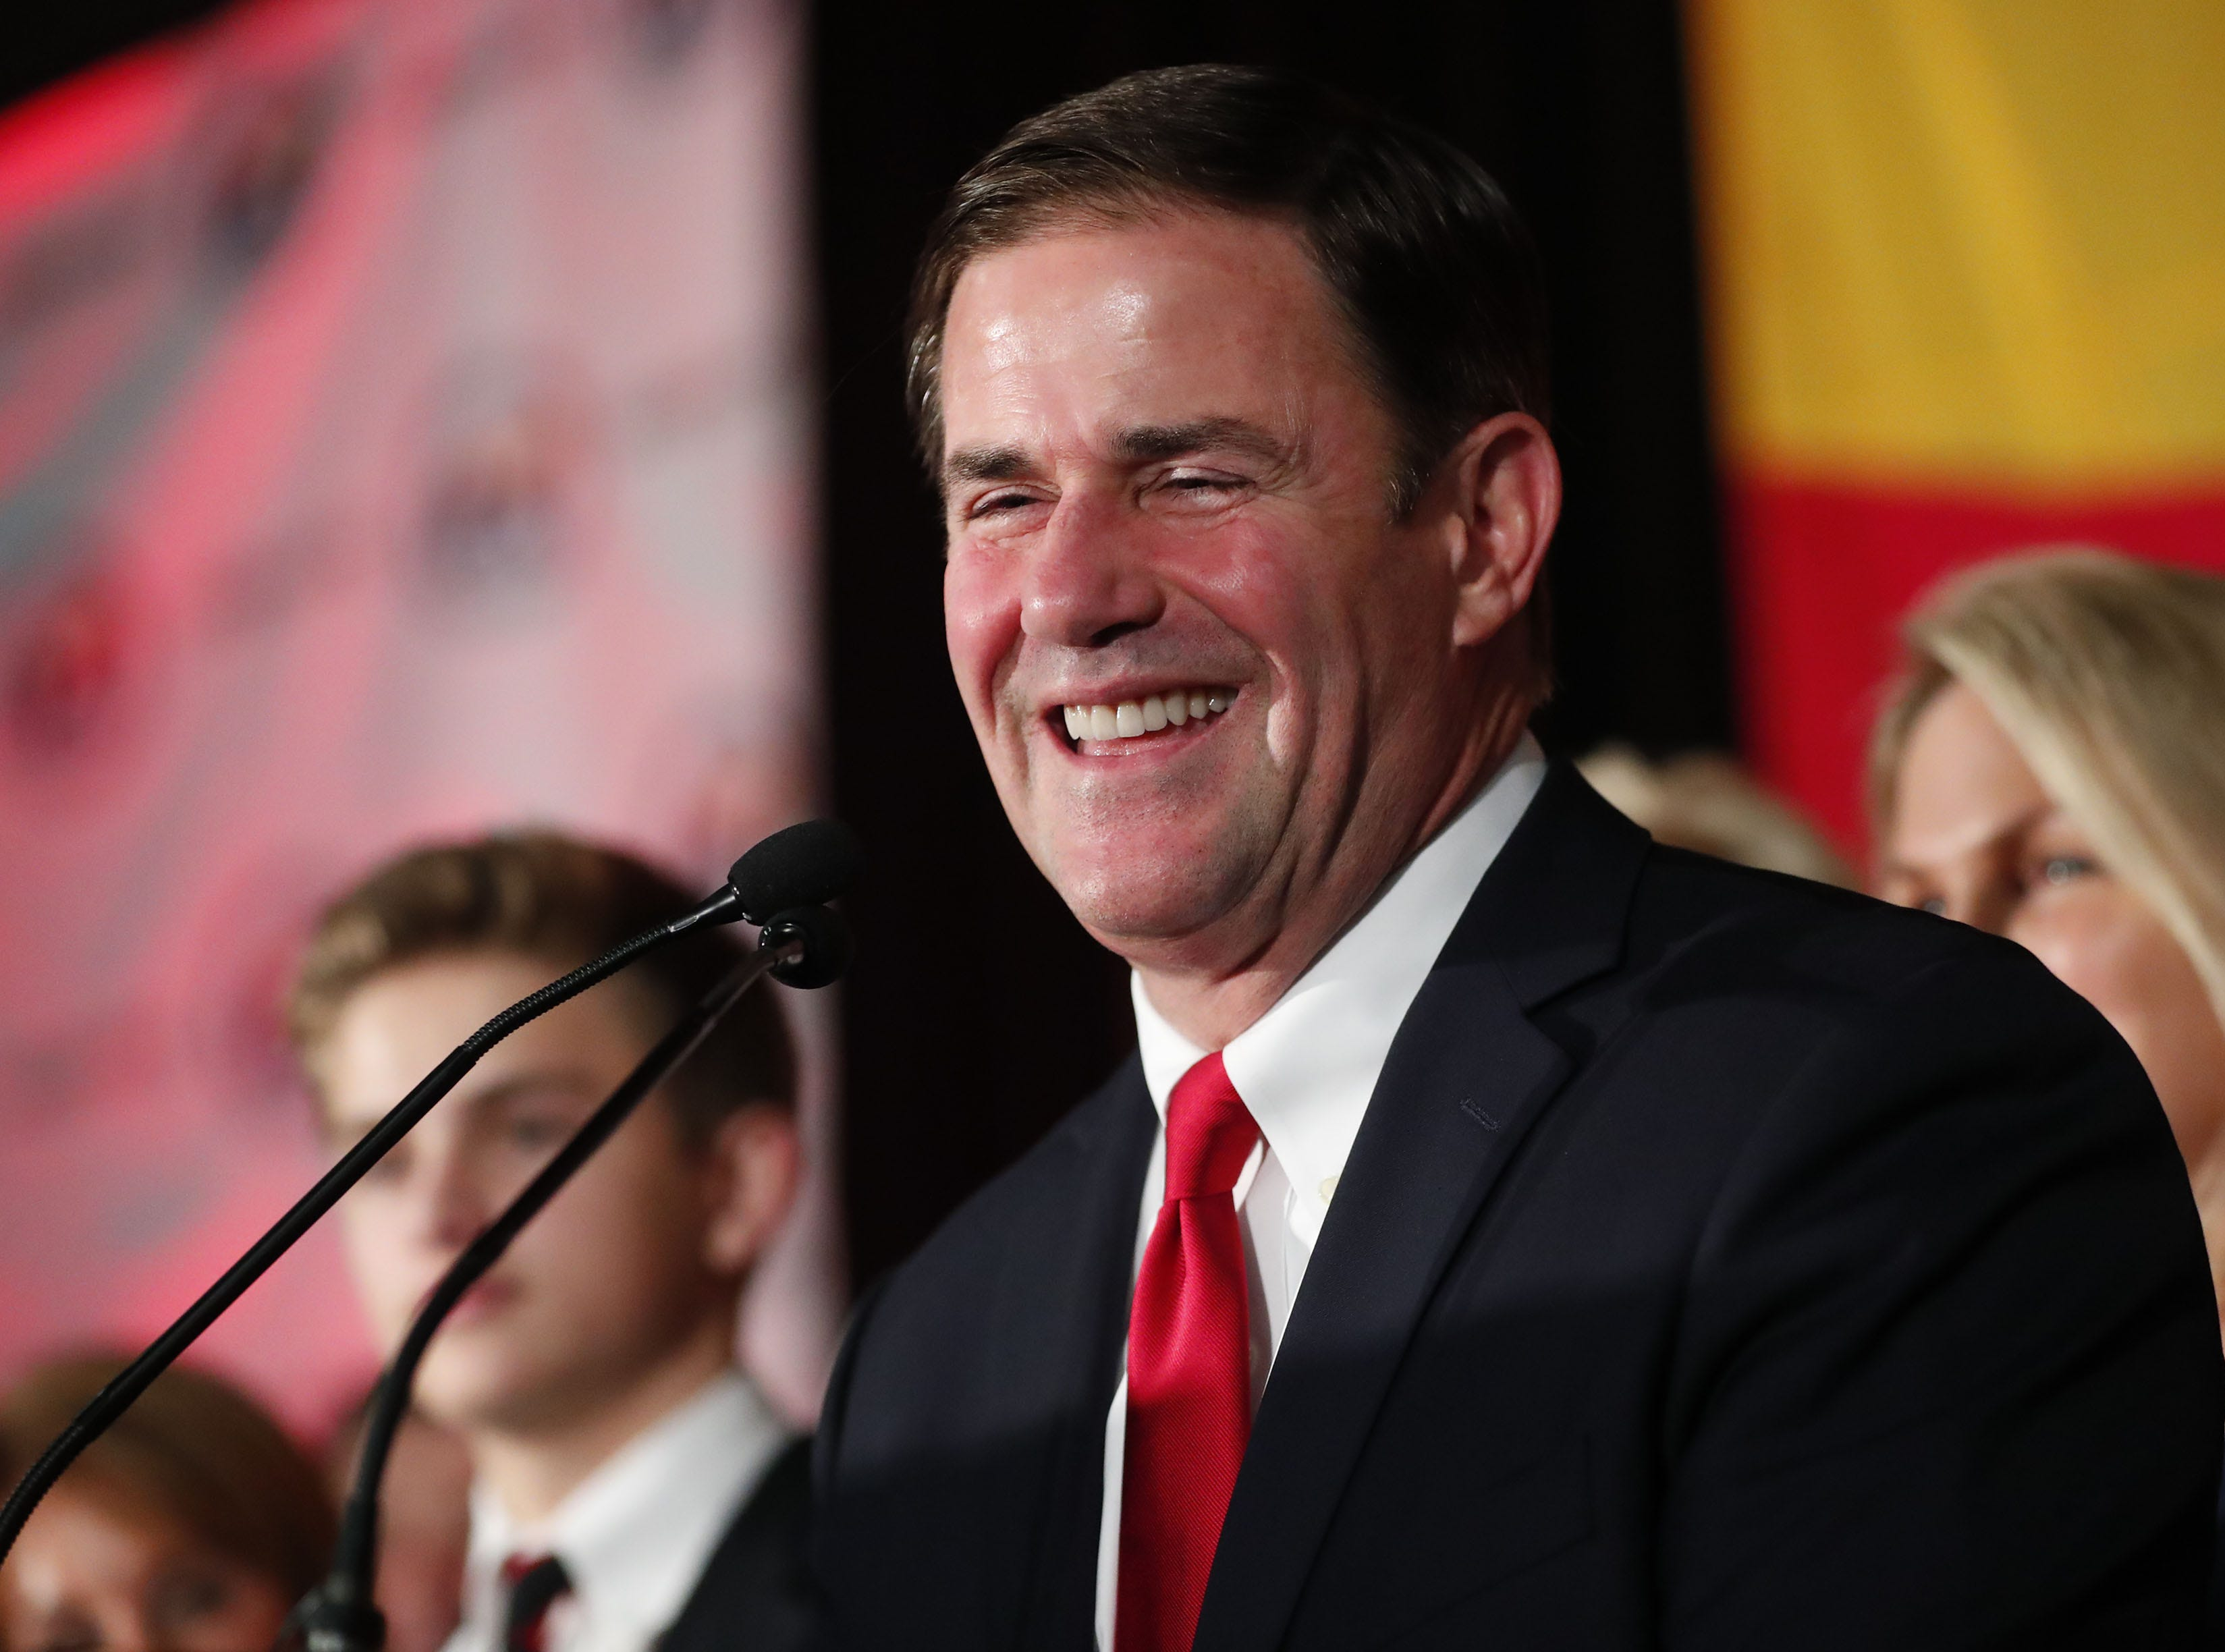 Gov. Doug Ducey speaks to supporters Nov. 6, 2018, during the Arizona Republican Party Election Night party in Scottsdale, Ariz. Ducey won his re-election against Democratic challenger David Garcia.